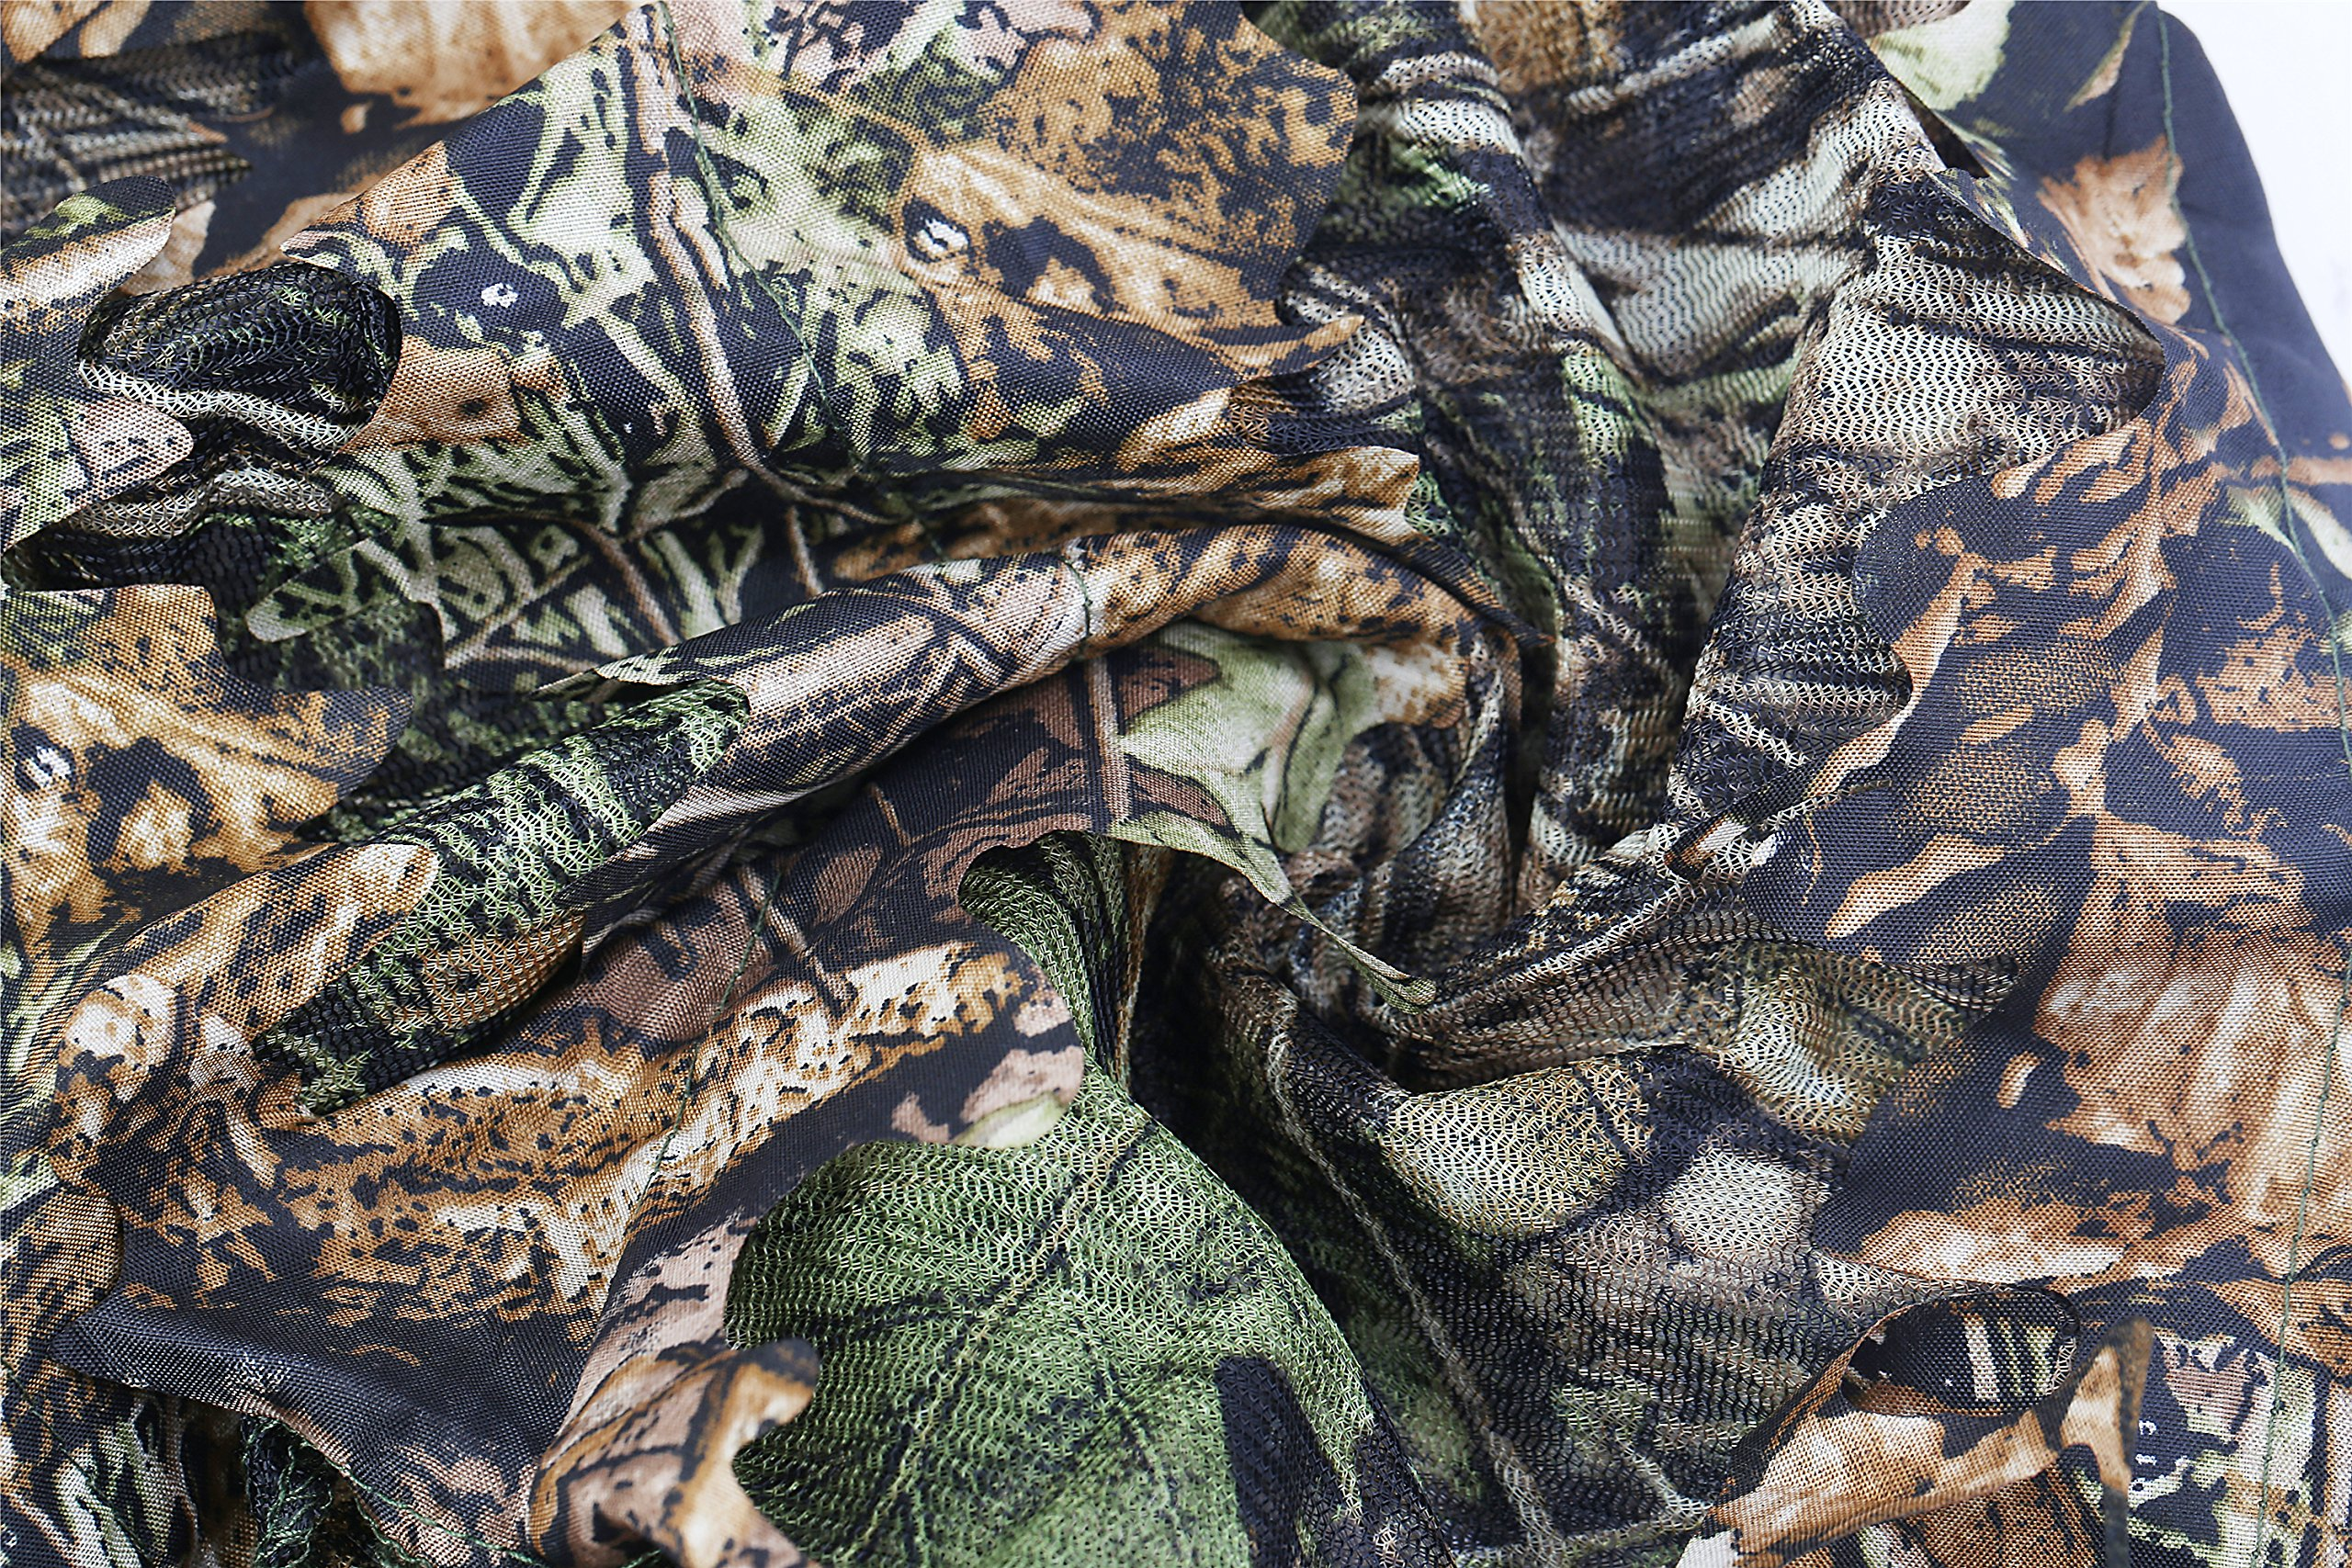 ABCAMO Light Weight Hunting Camouflage Full Cover 3D Leafy Face Mask by ABCAMO (Image #6)